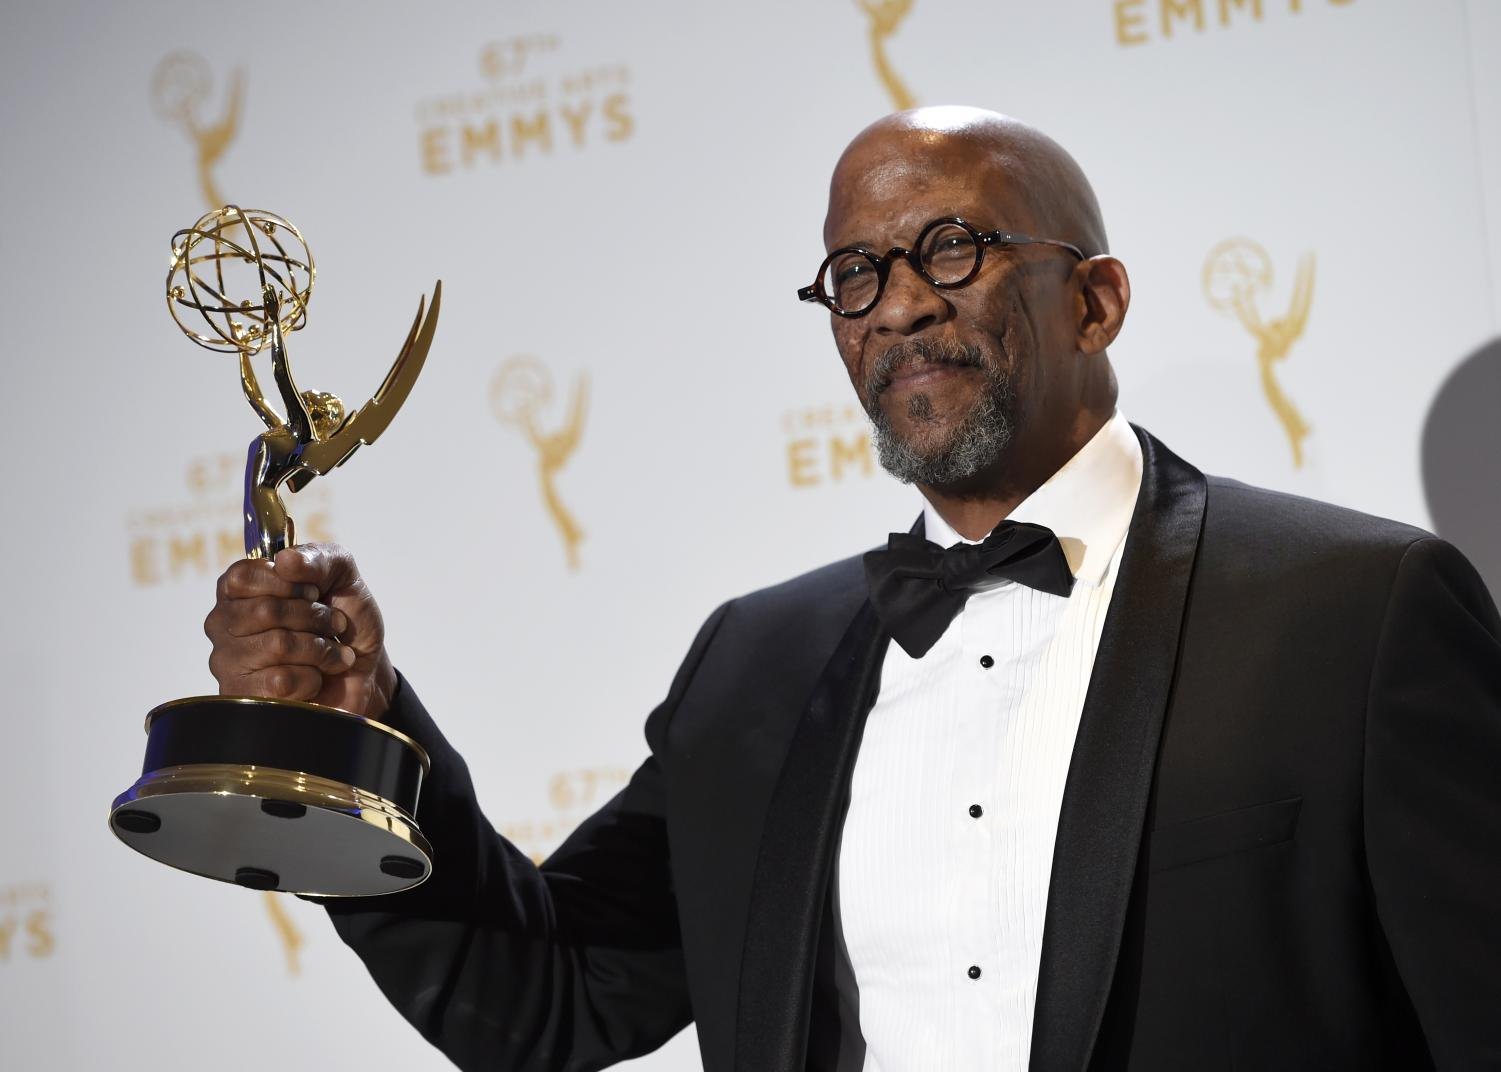 Actor Reg E Cathey In House Of Cards Dead At 59